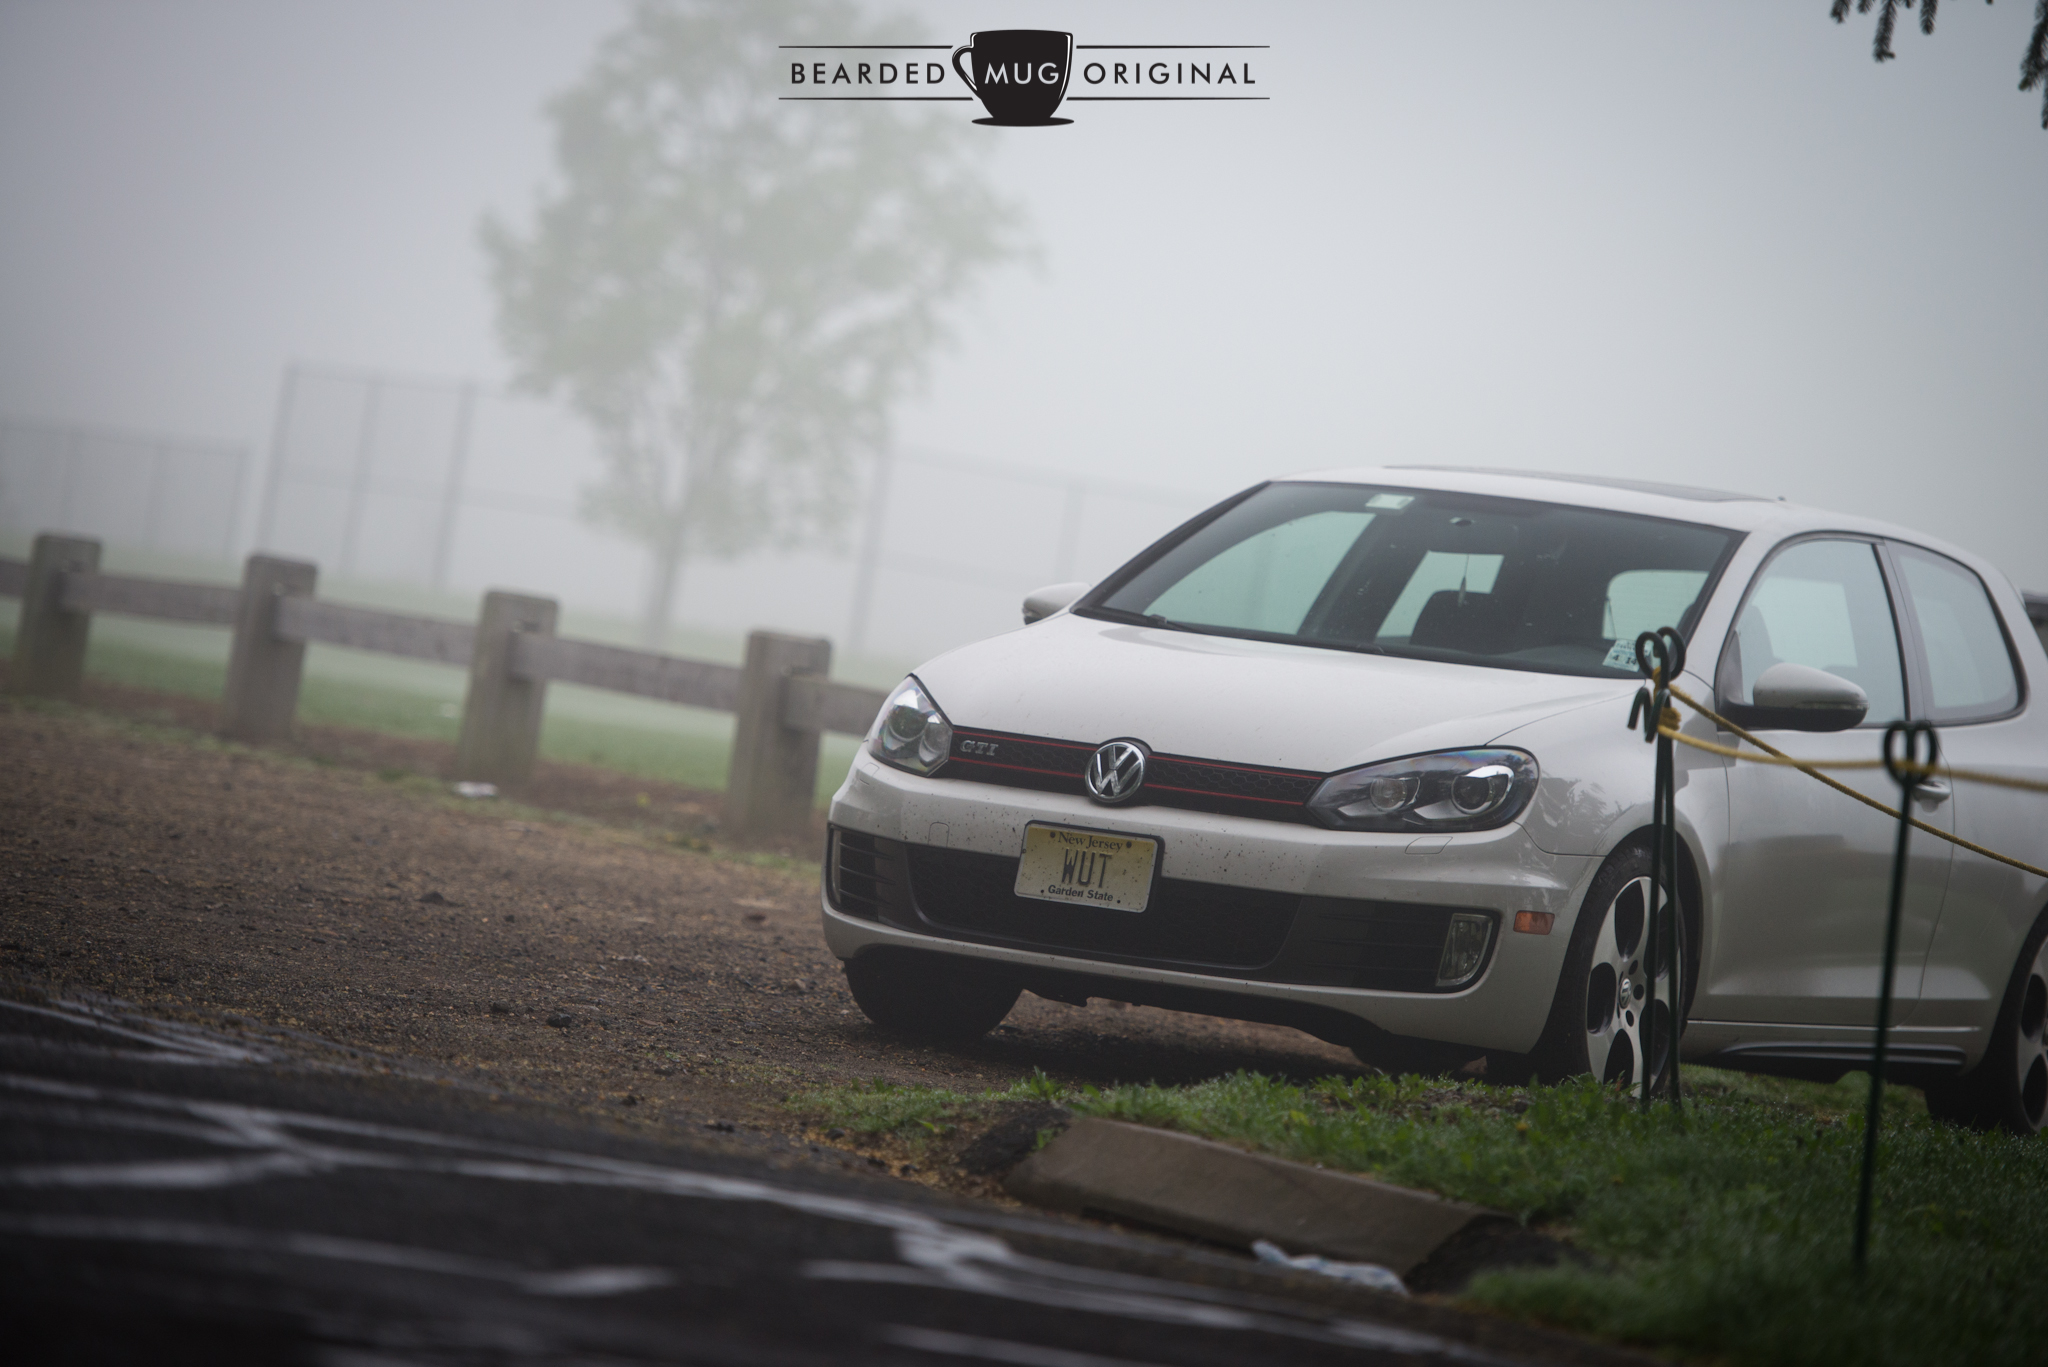 Here's your photographic proof that the WUTmobile arrived before everyone else. And check out that fog!